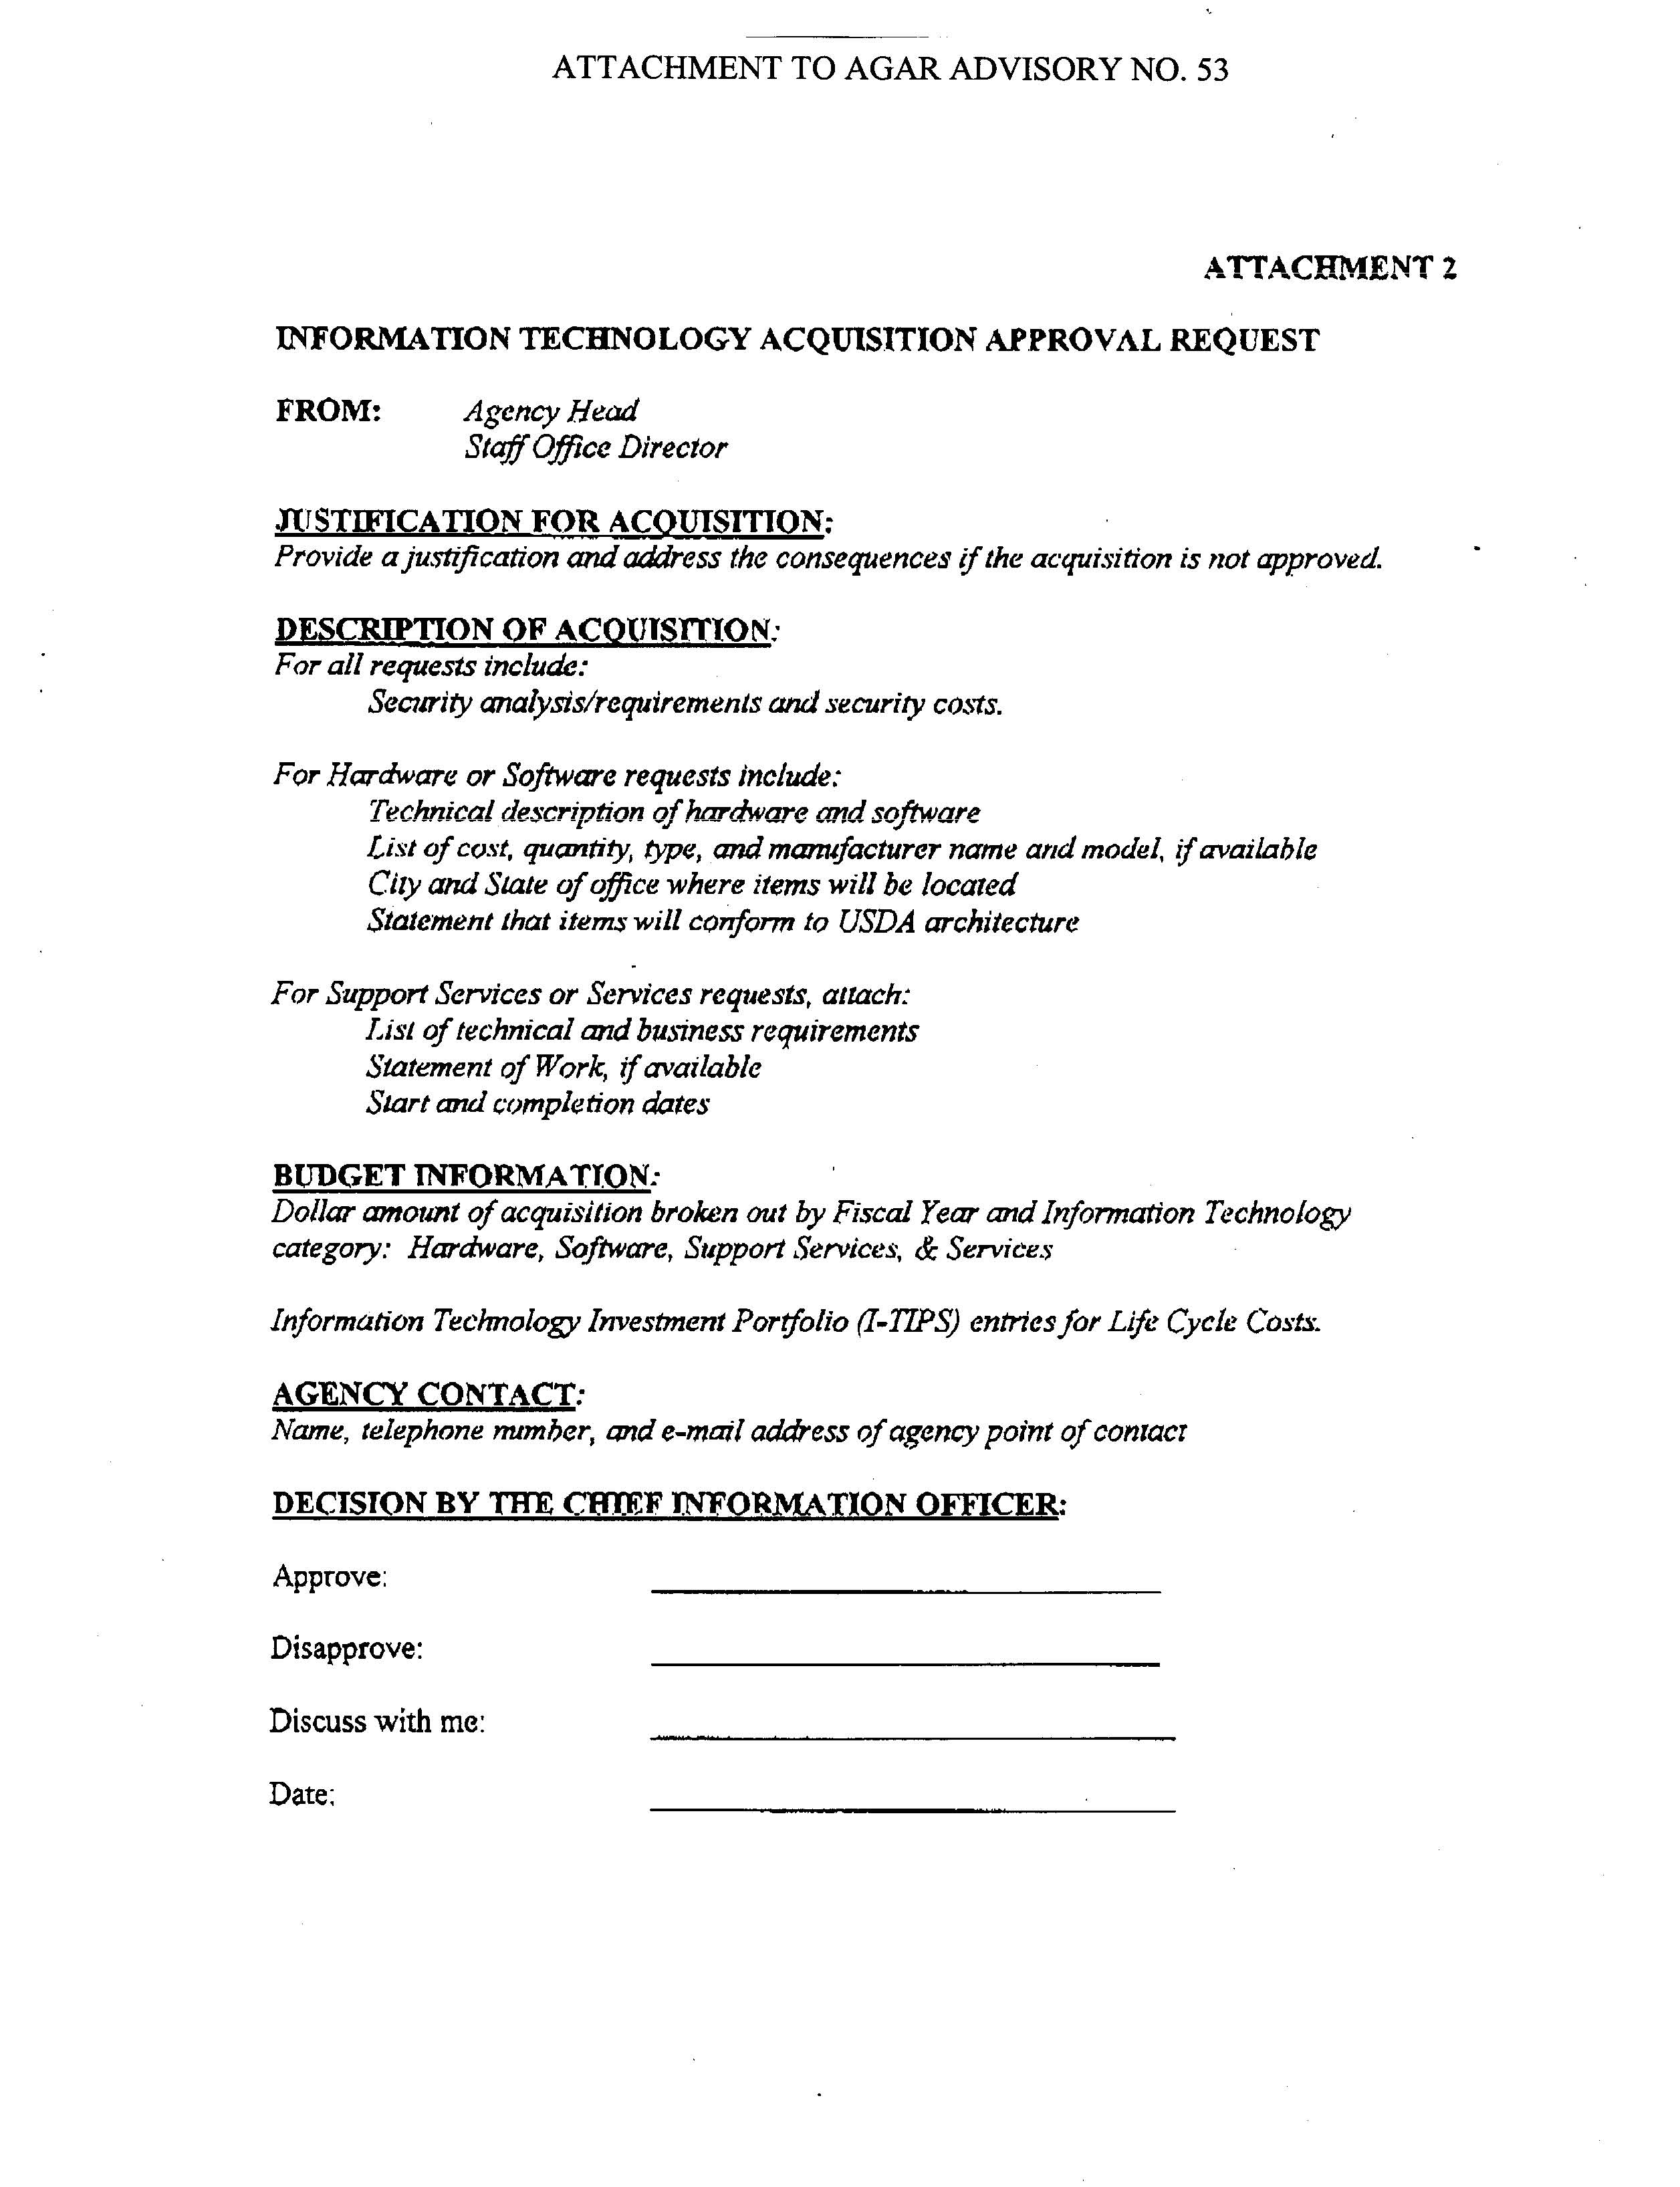 resumeexamplessamples agarad53 img 3 jpg jobs - Loan Officer Assistant Job Description